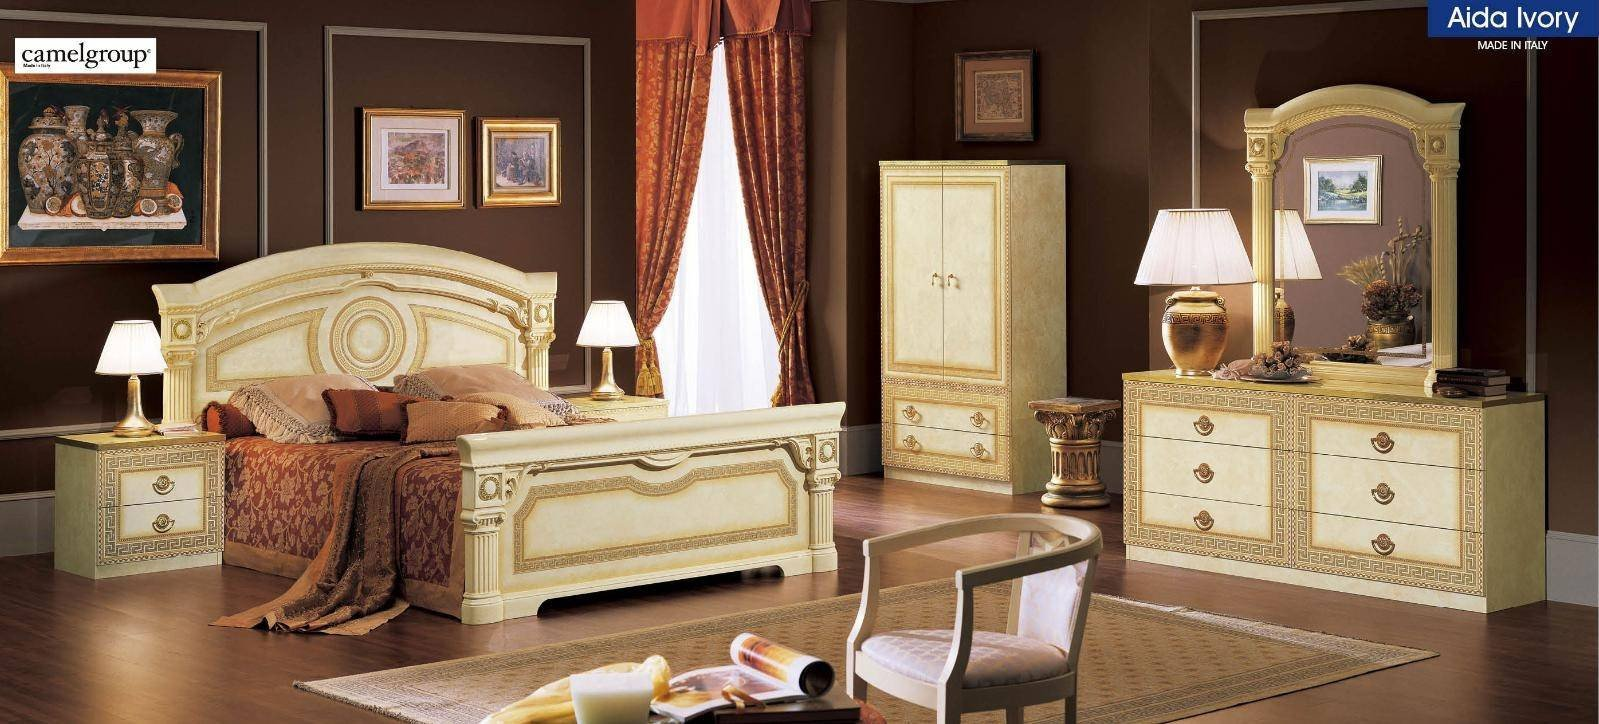 Golden and White Bedroom Unique Esf Aida Ivory Gold Lacquer Finish Queen Bedroom Set 5ps